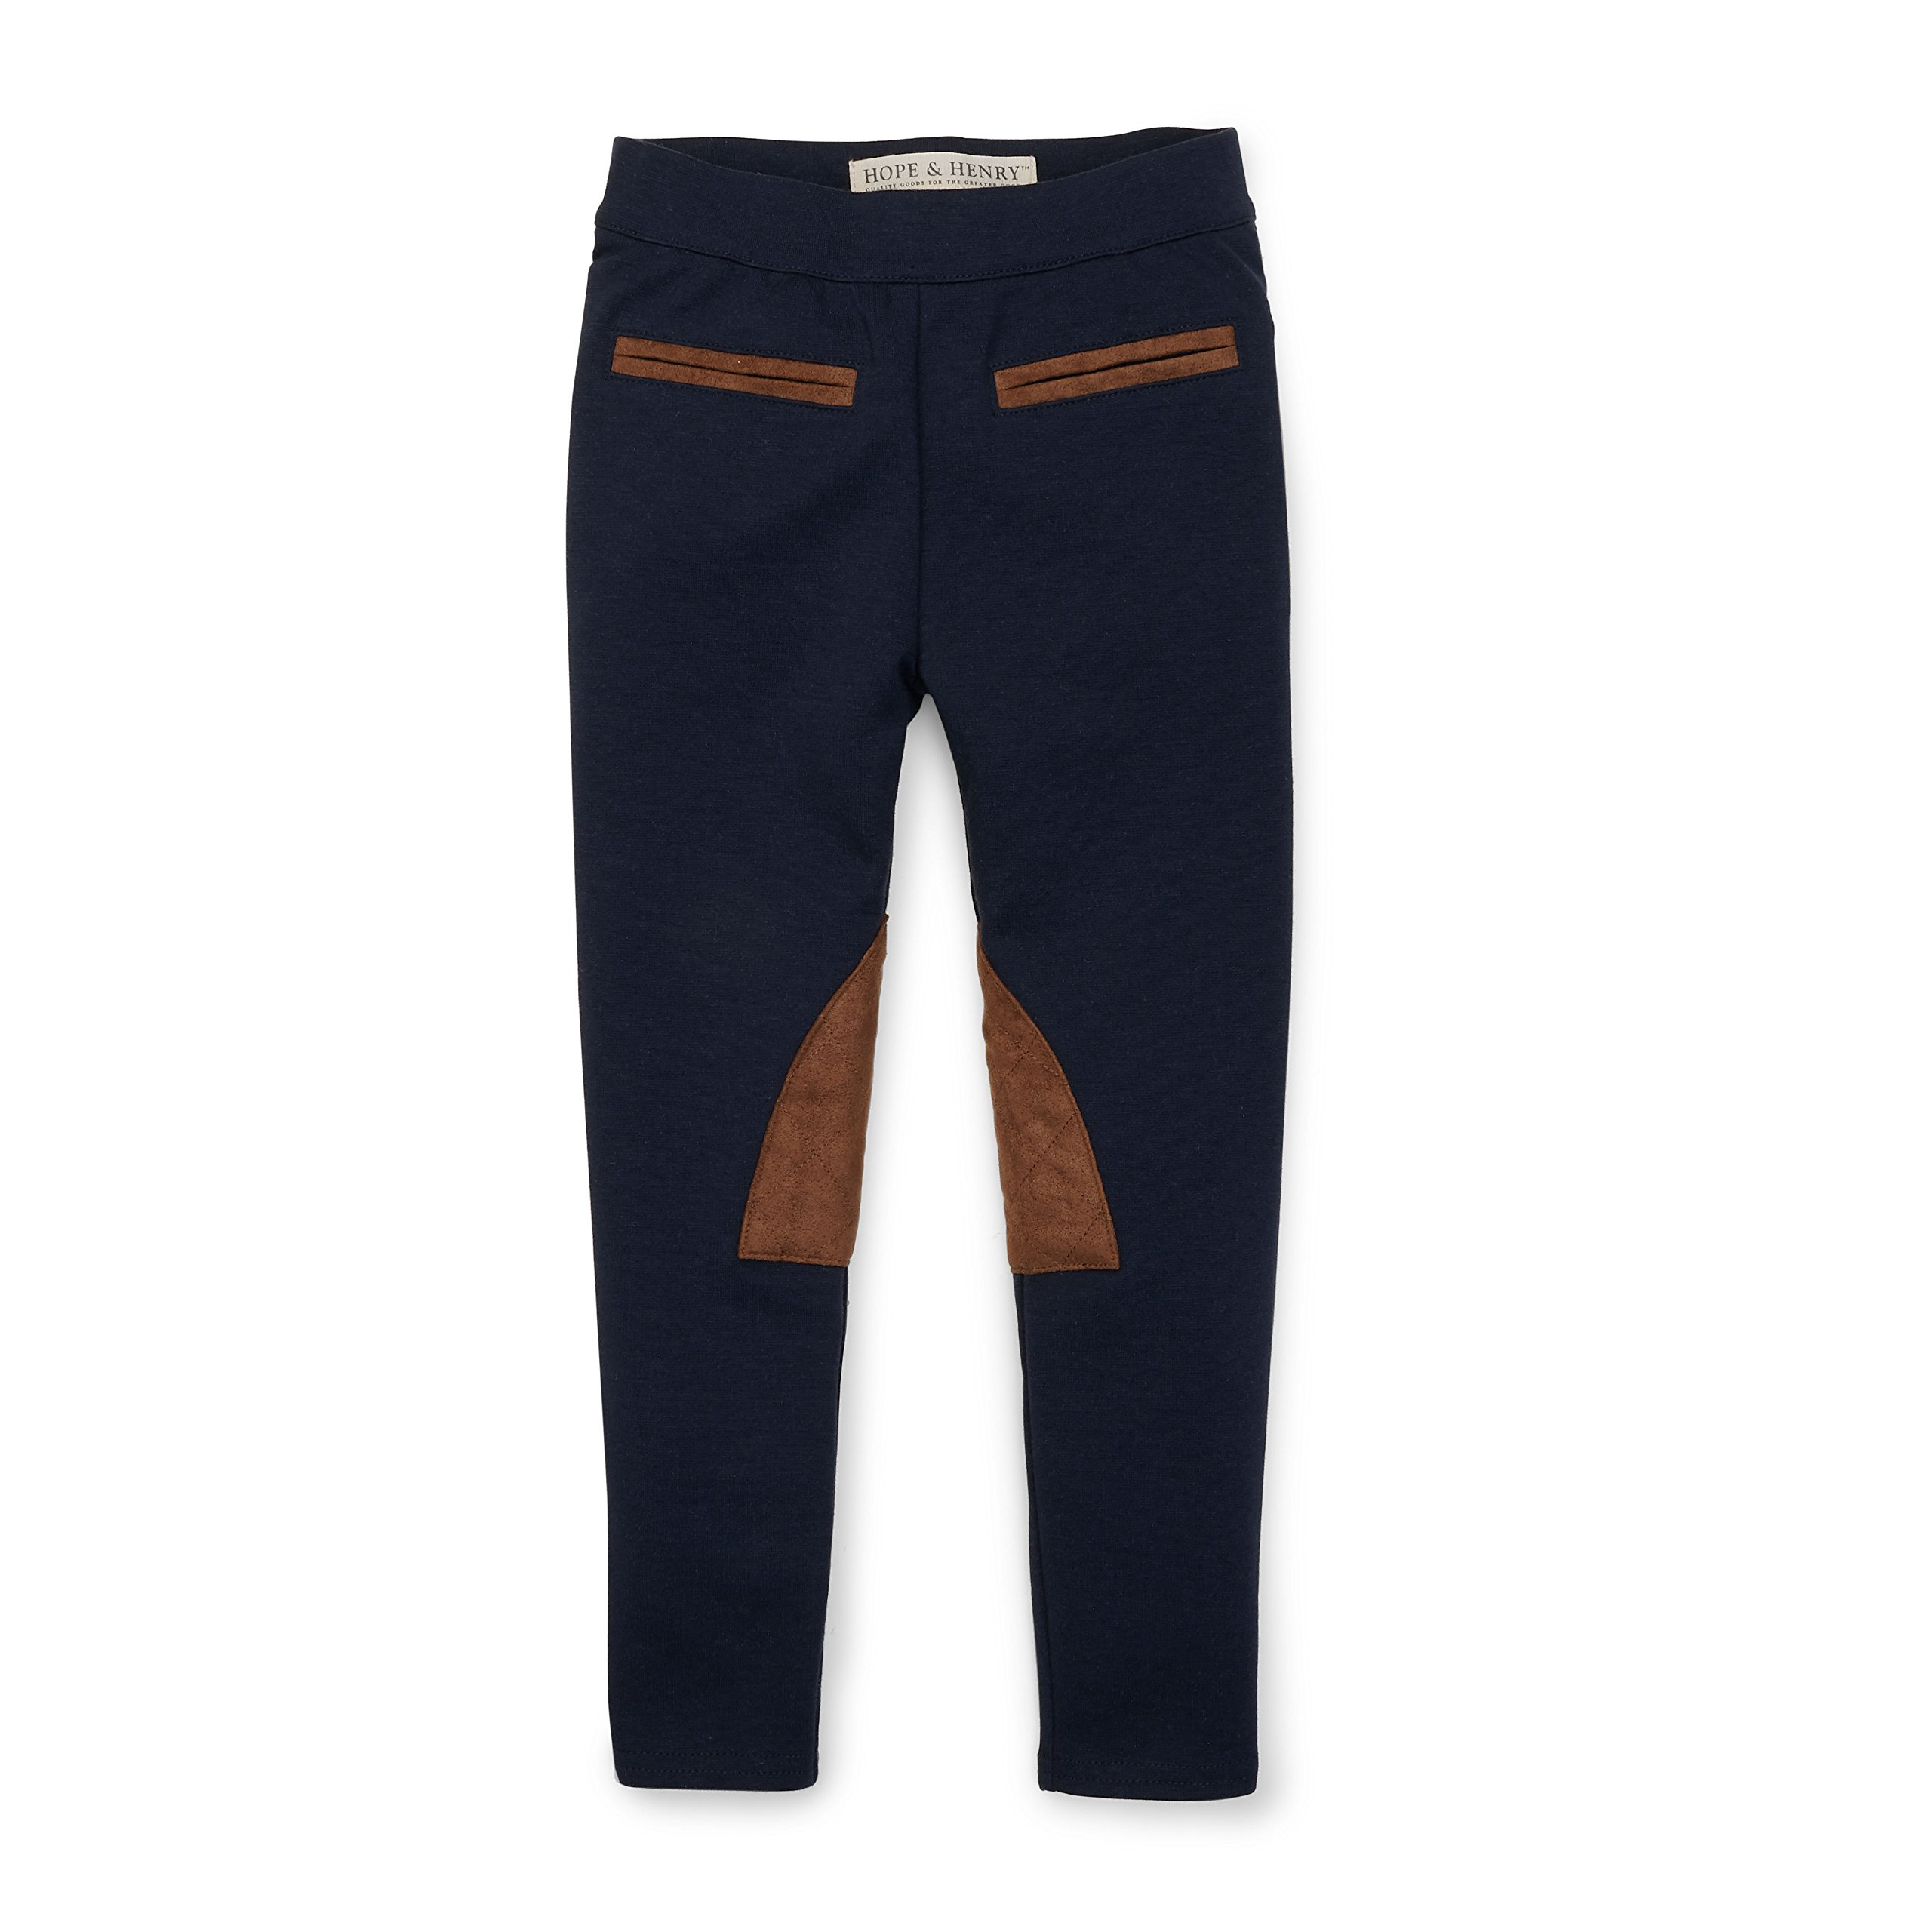 Hope & Henry Girls' Ponte Riding Pants Made with Organic Cotton Size 8